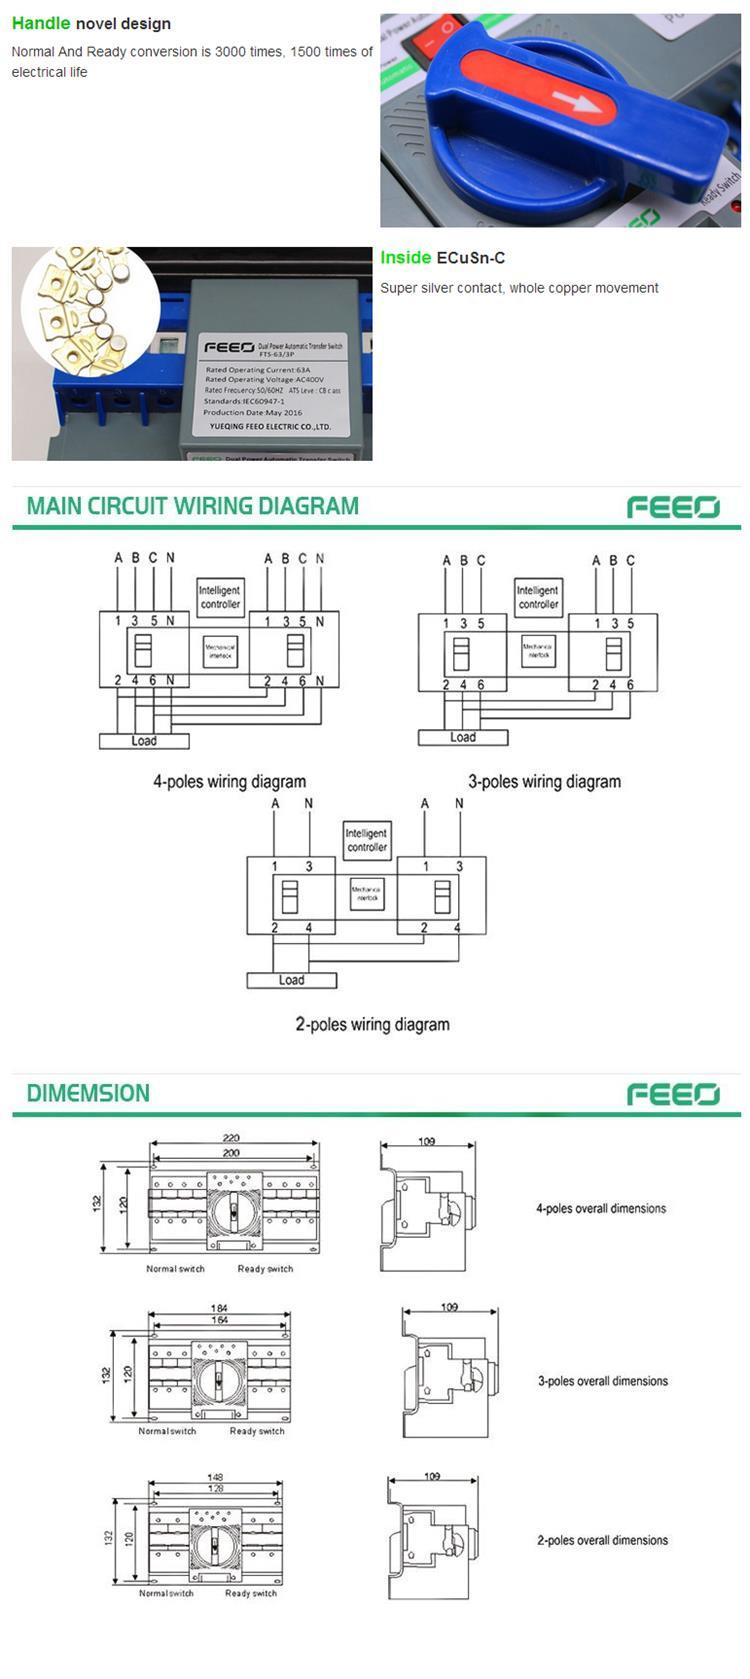 Ats Double Power Automatic Transfer Switch China Control Wiring Diagram Pictures Show Detailed Images